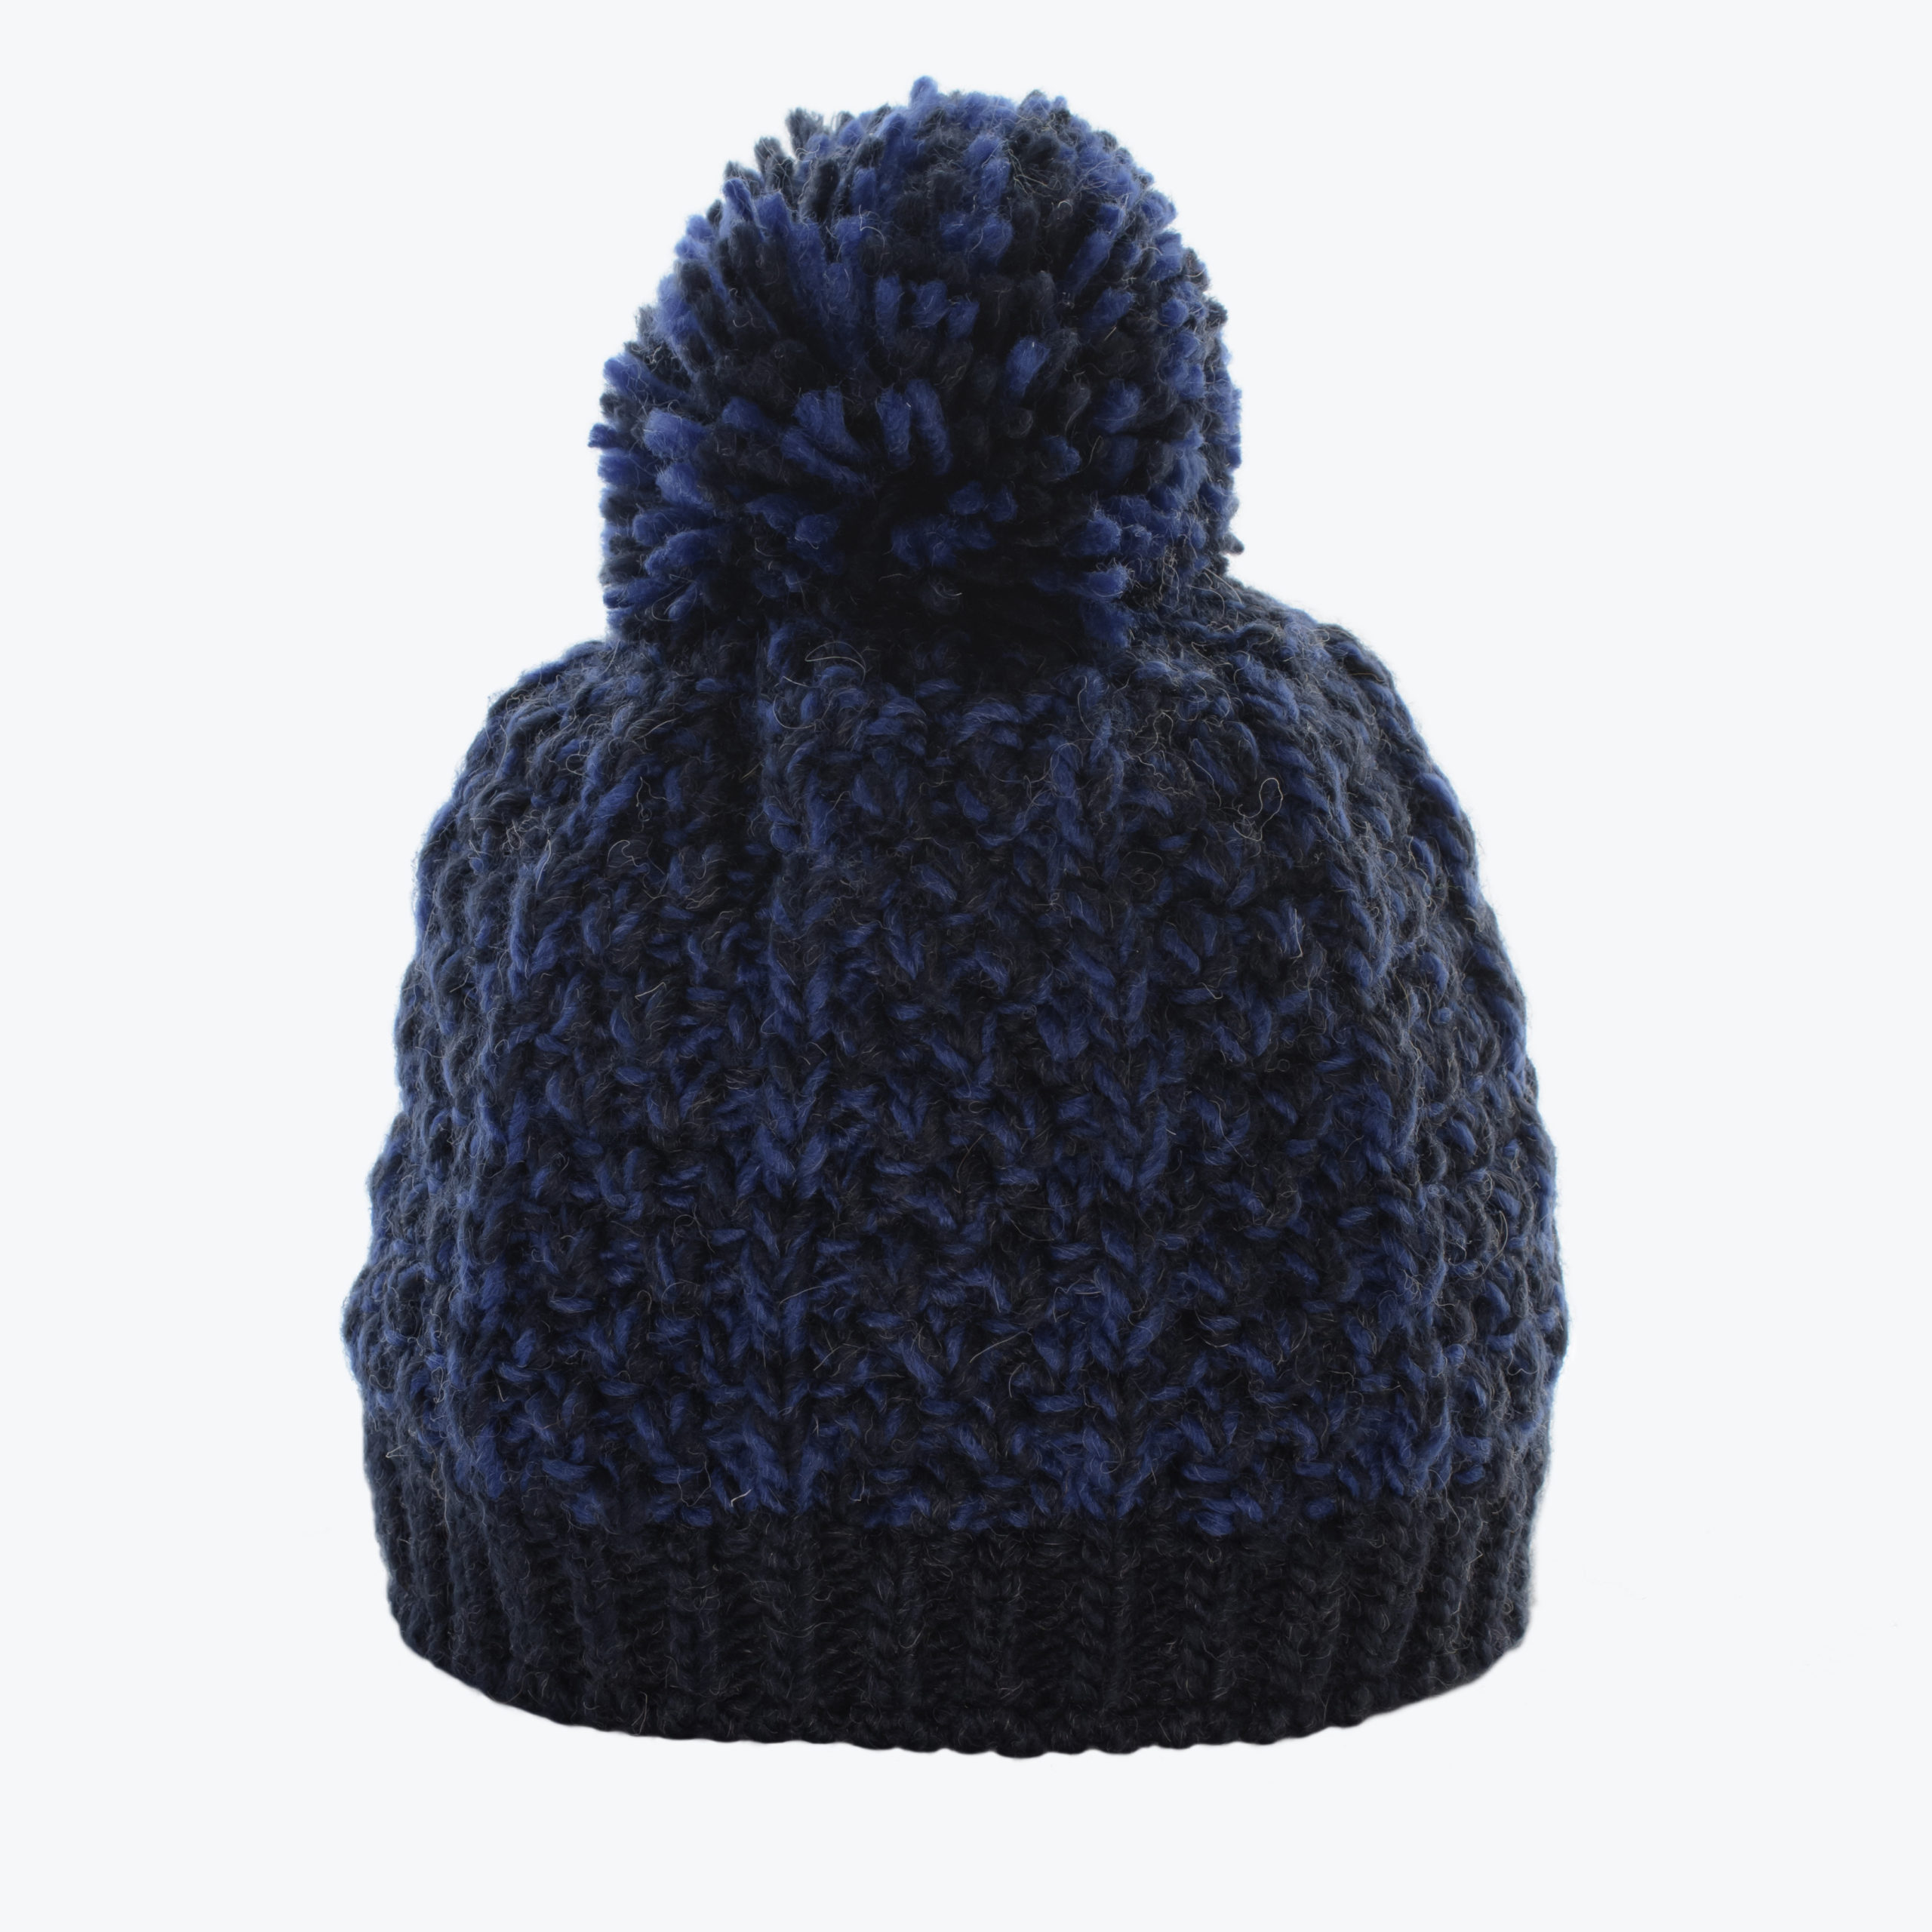 KID'S KNITTED BEANIE -BLUE